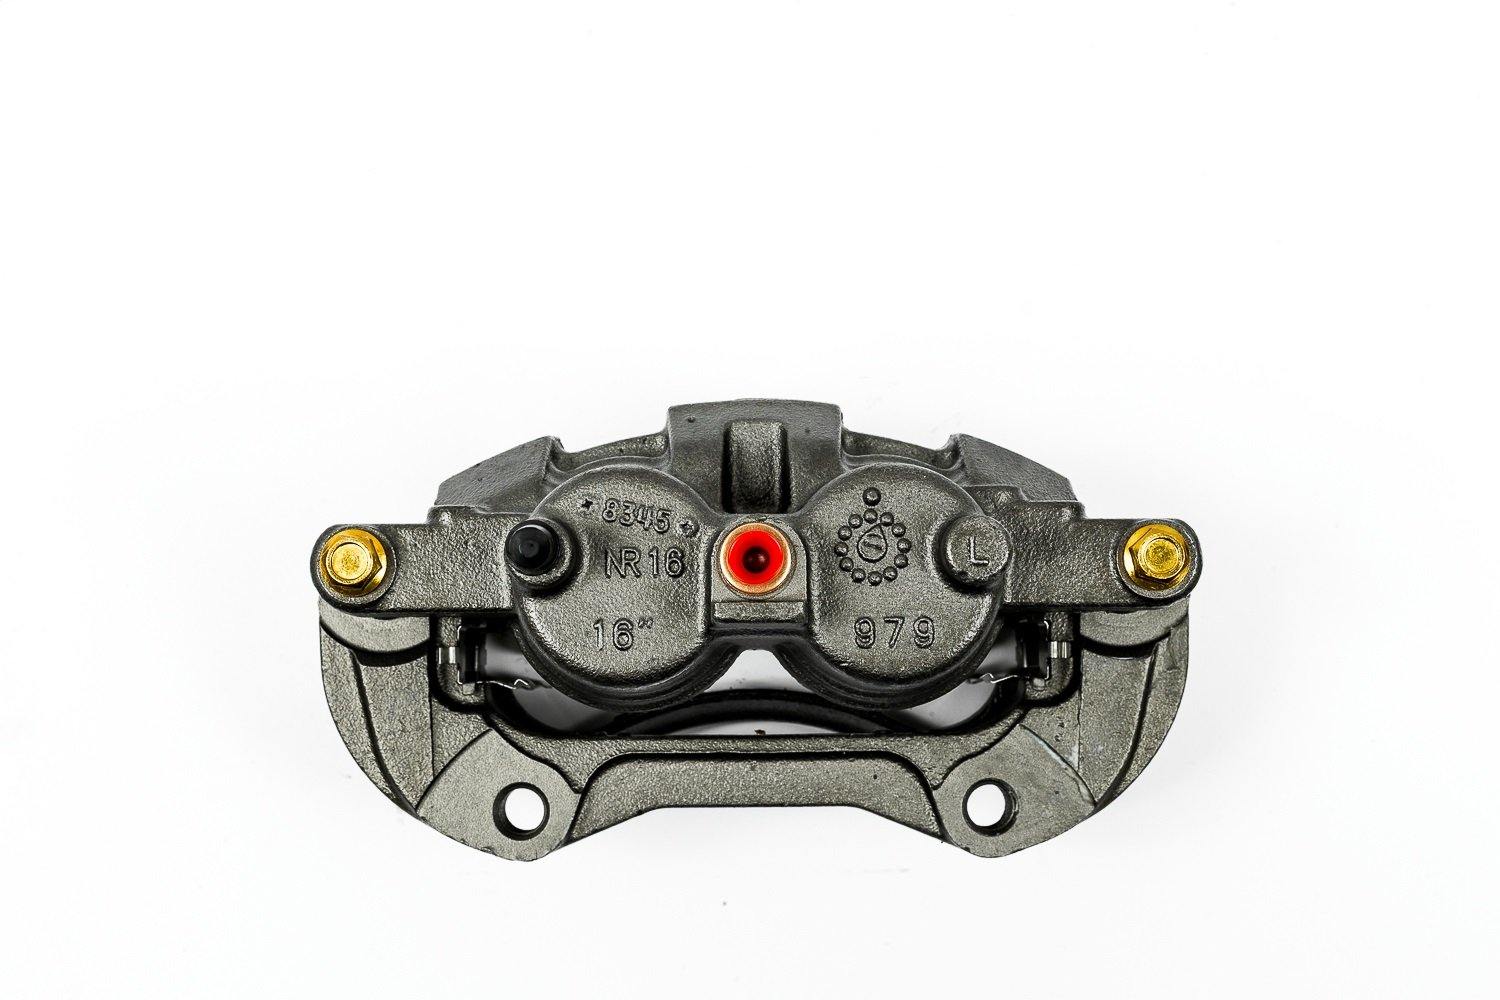 Power Stop L4988 Autospecialty Remanufactured Caliper